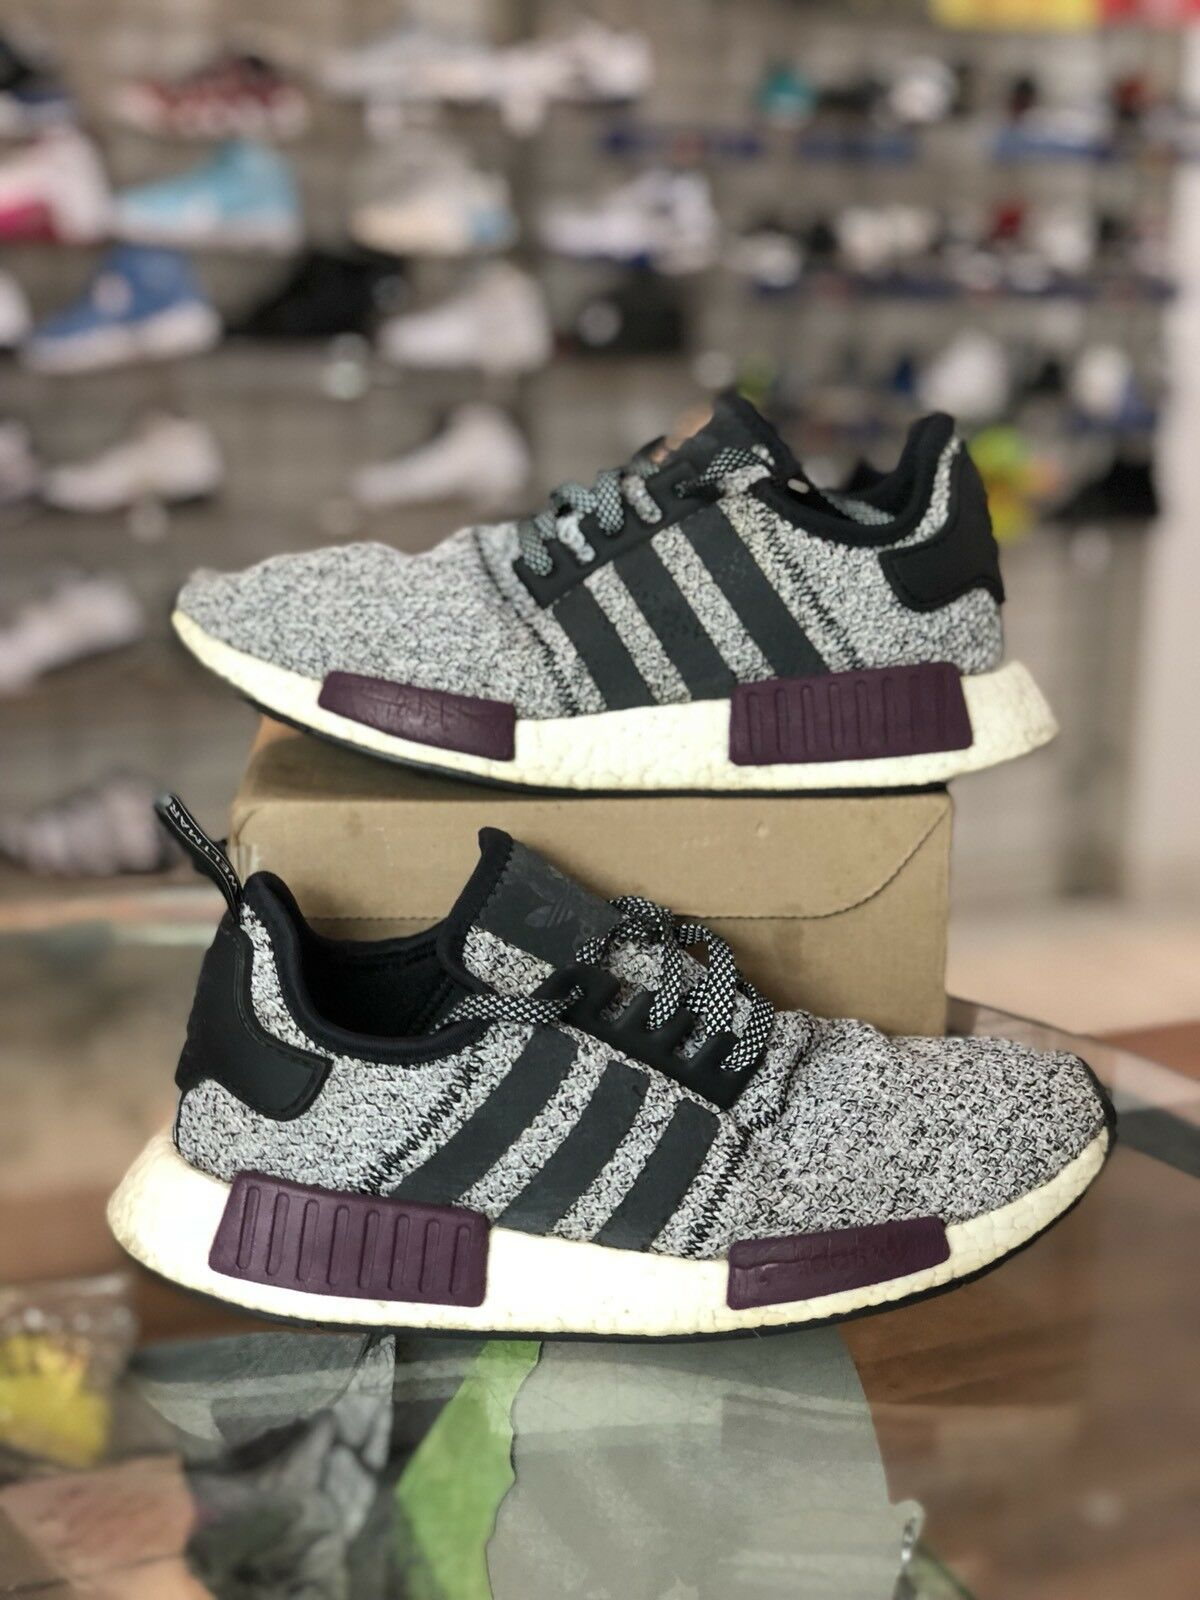 Adidas NMD R1 Champs Exclusive Grey Burgundy Men's Size 10